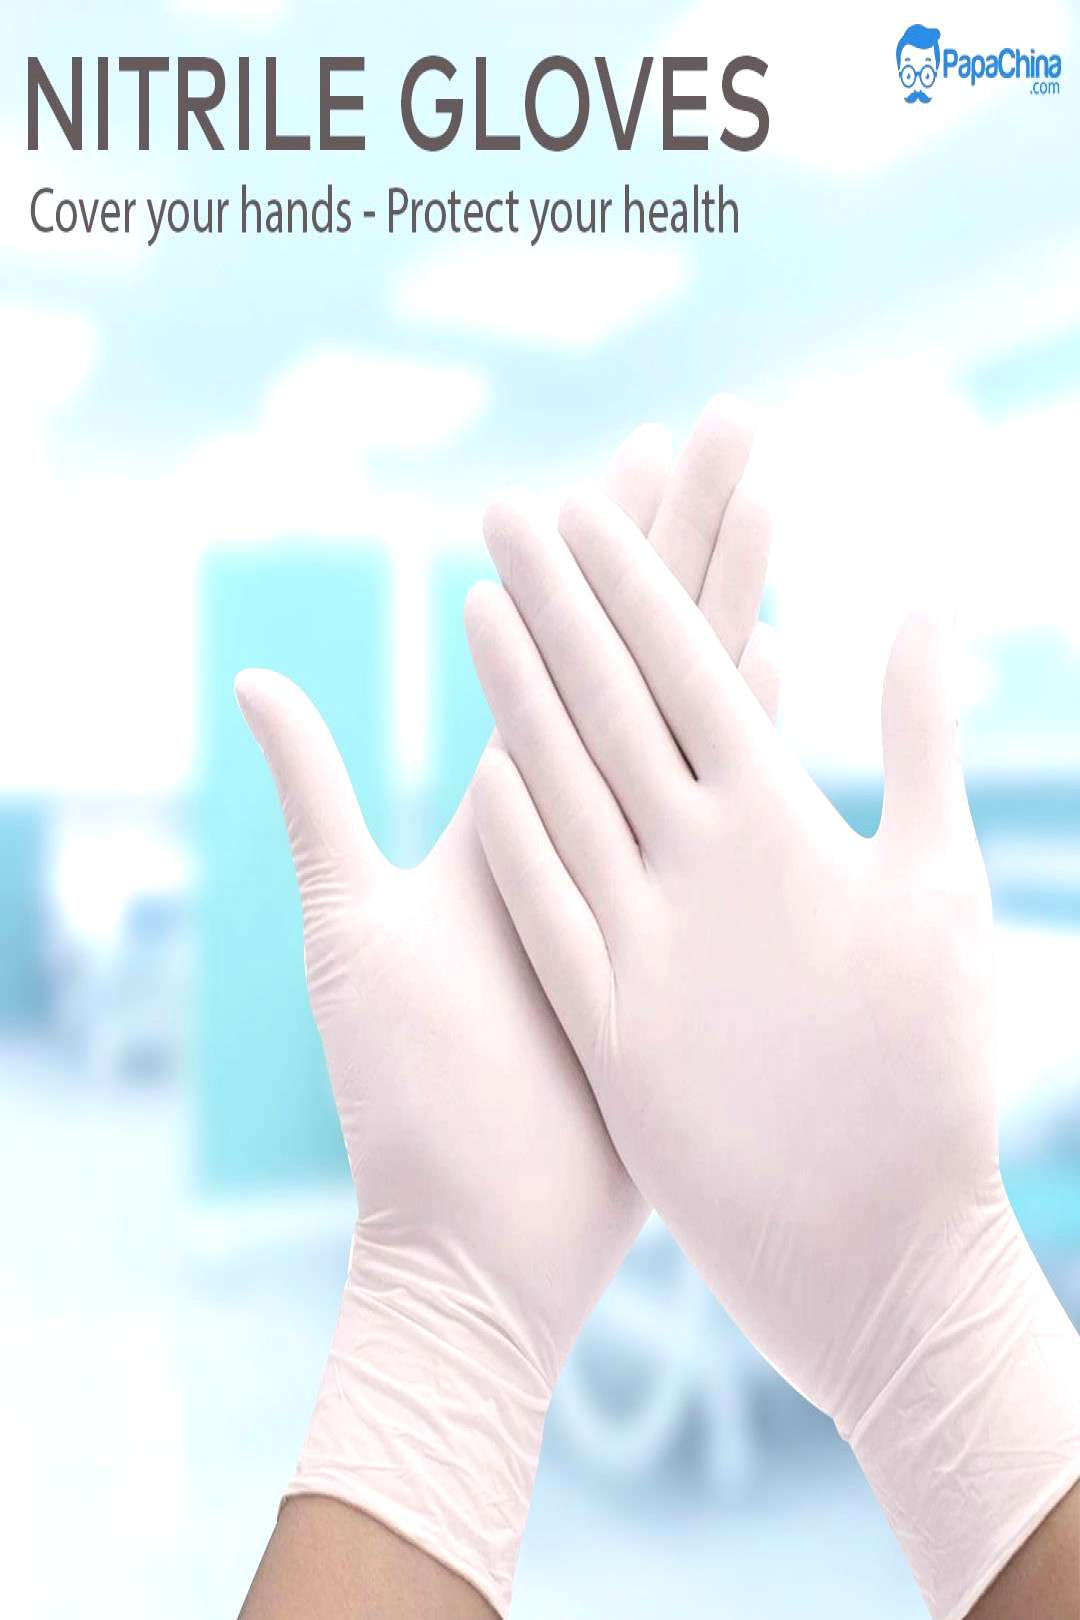 Nitrile Gloves Cover your hands and Protect your health.